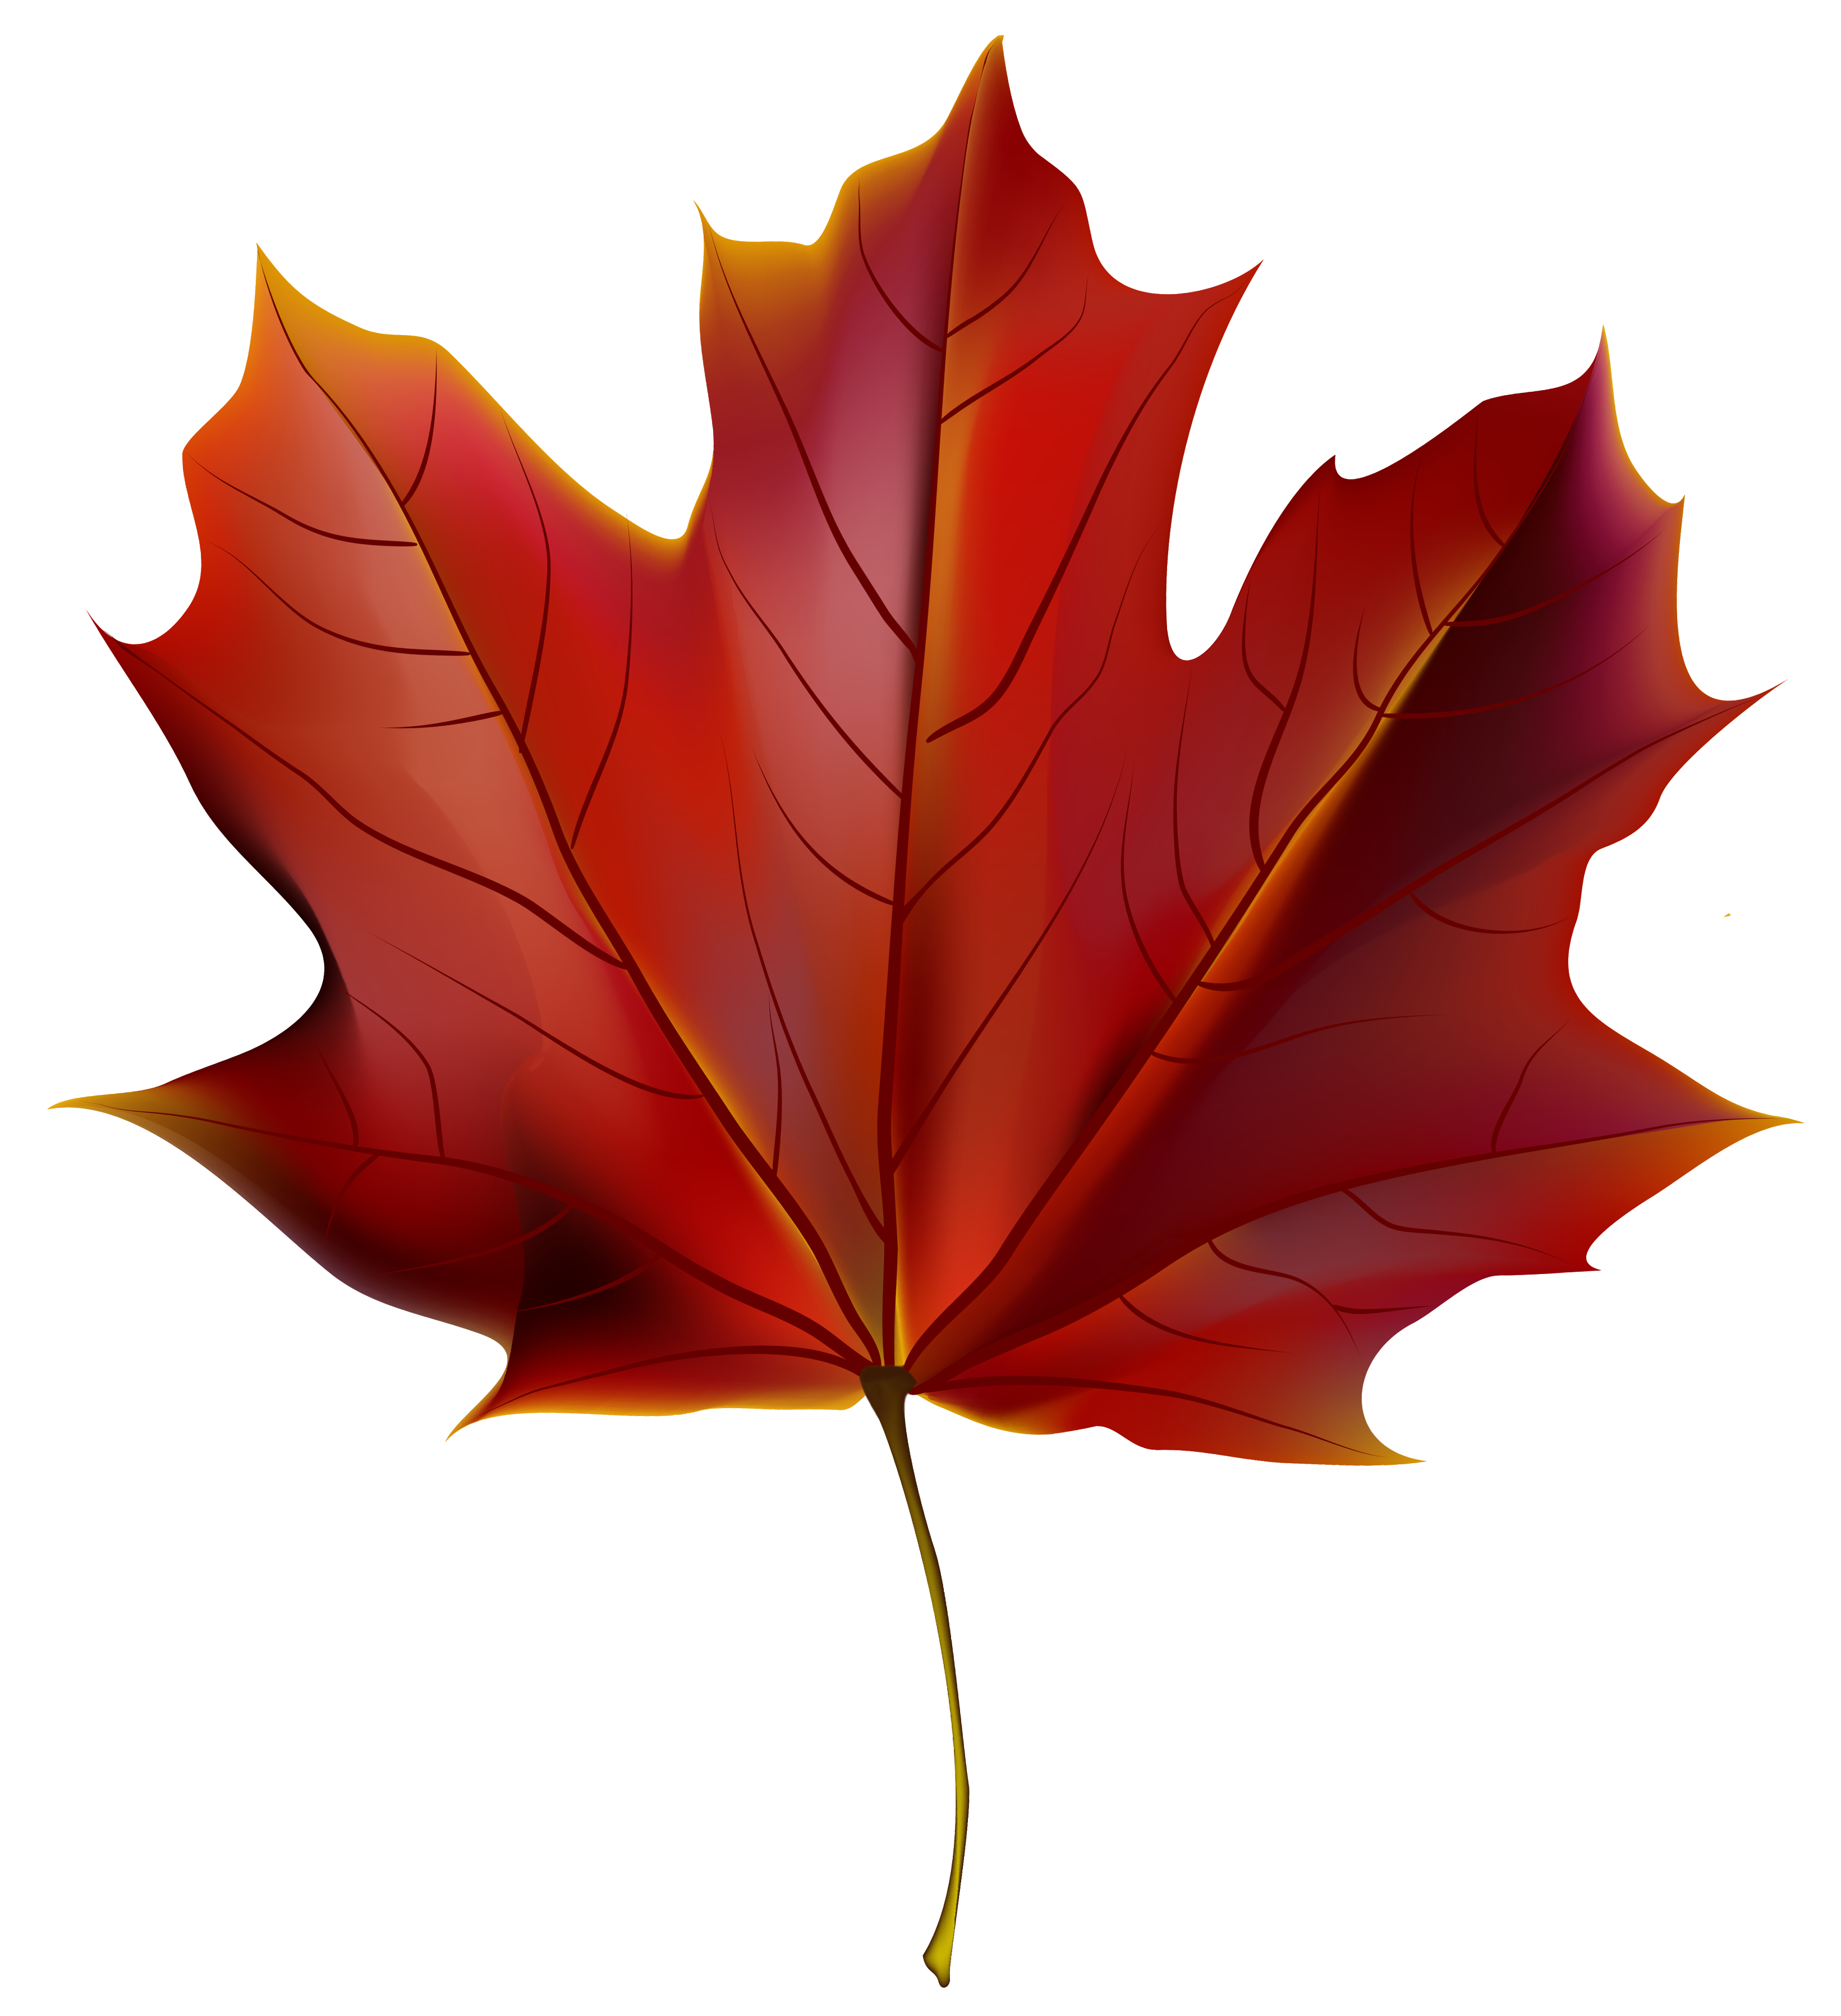 Beautiful Red Autumn Leaf PNG Clipart Image.